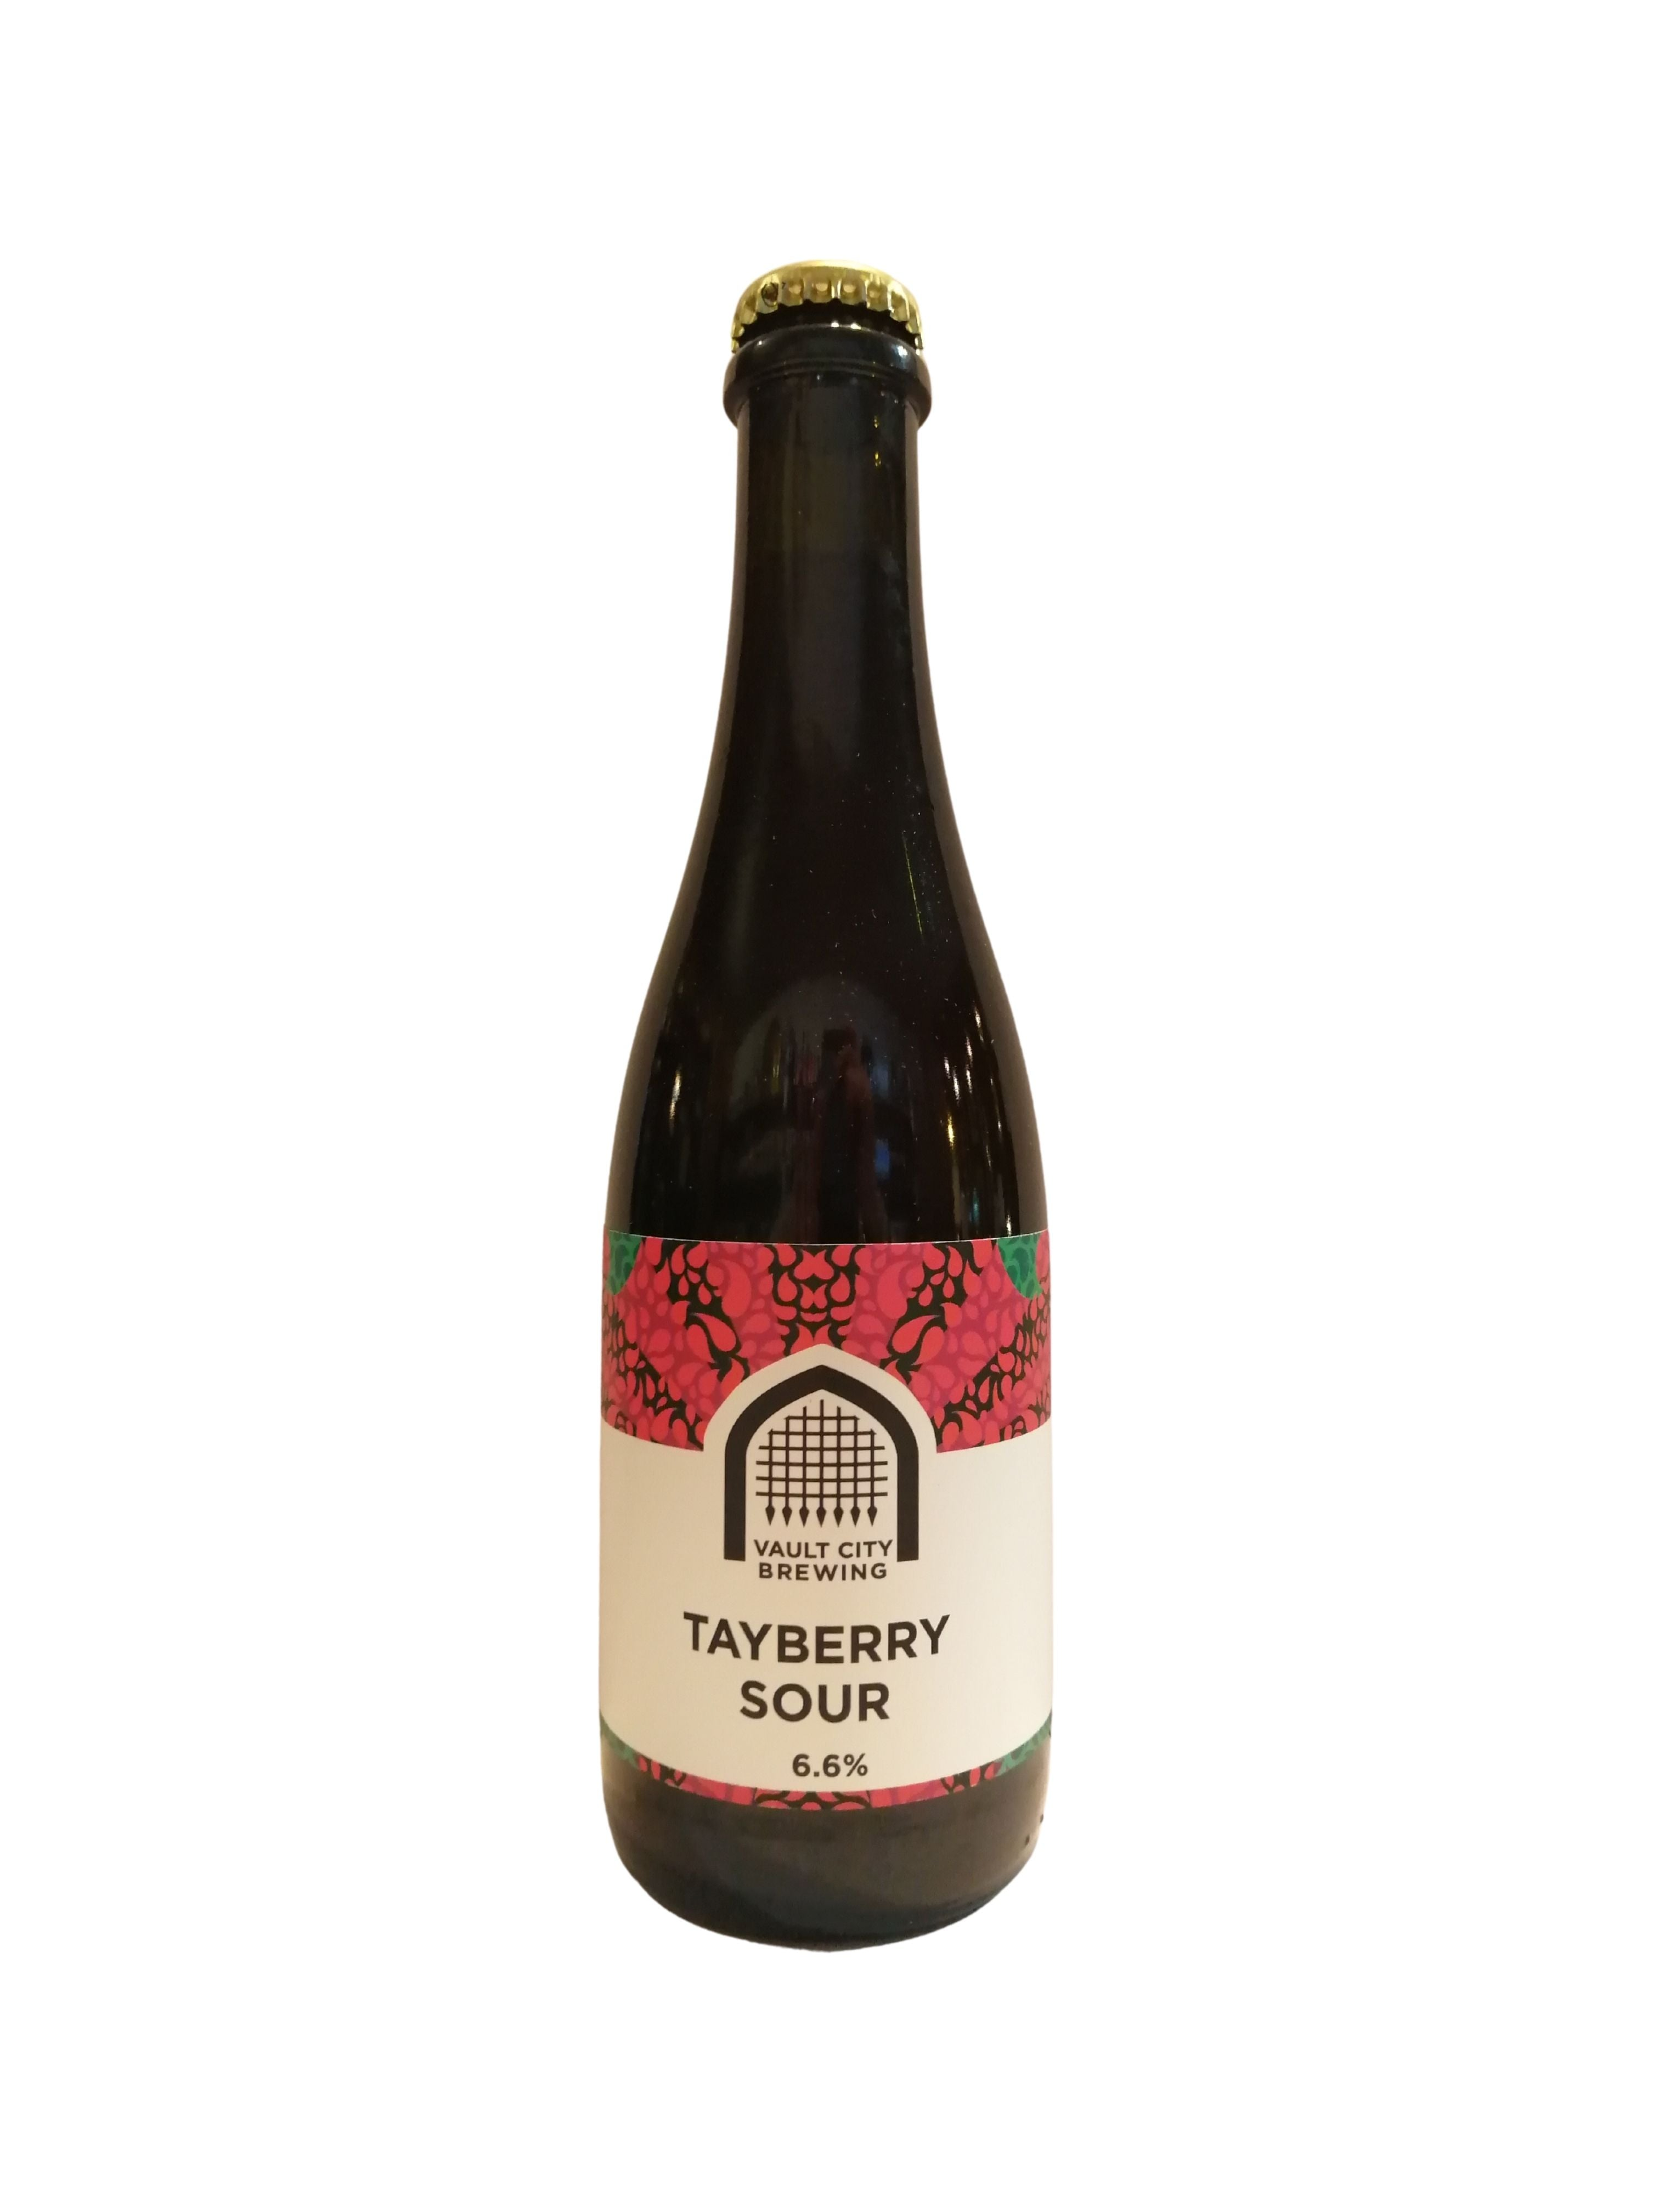 Vault City - Tayberry Sour - Sour - 6.6% (Brand New)